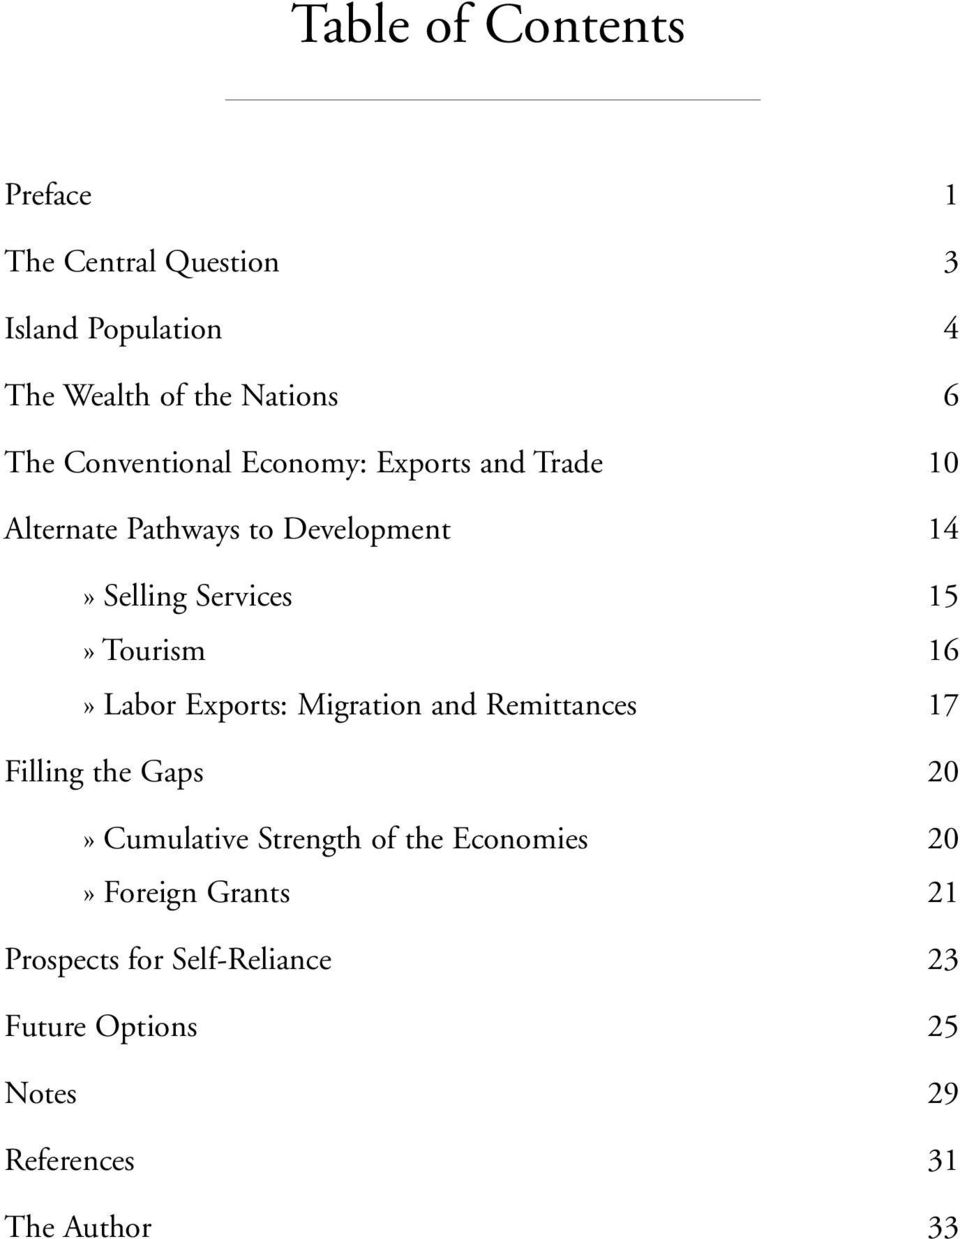 Tourism 16» Labor Exports: Migration and Remittances 17 Filling the Gaps 20» Cumulative Strength of the